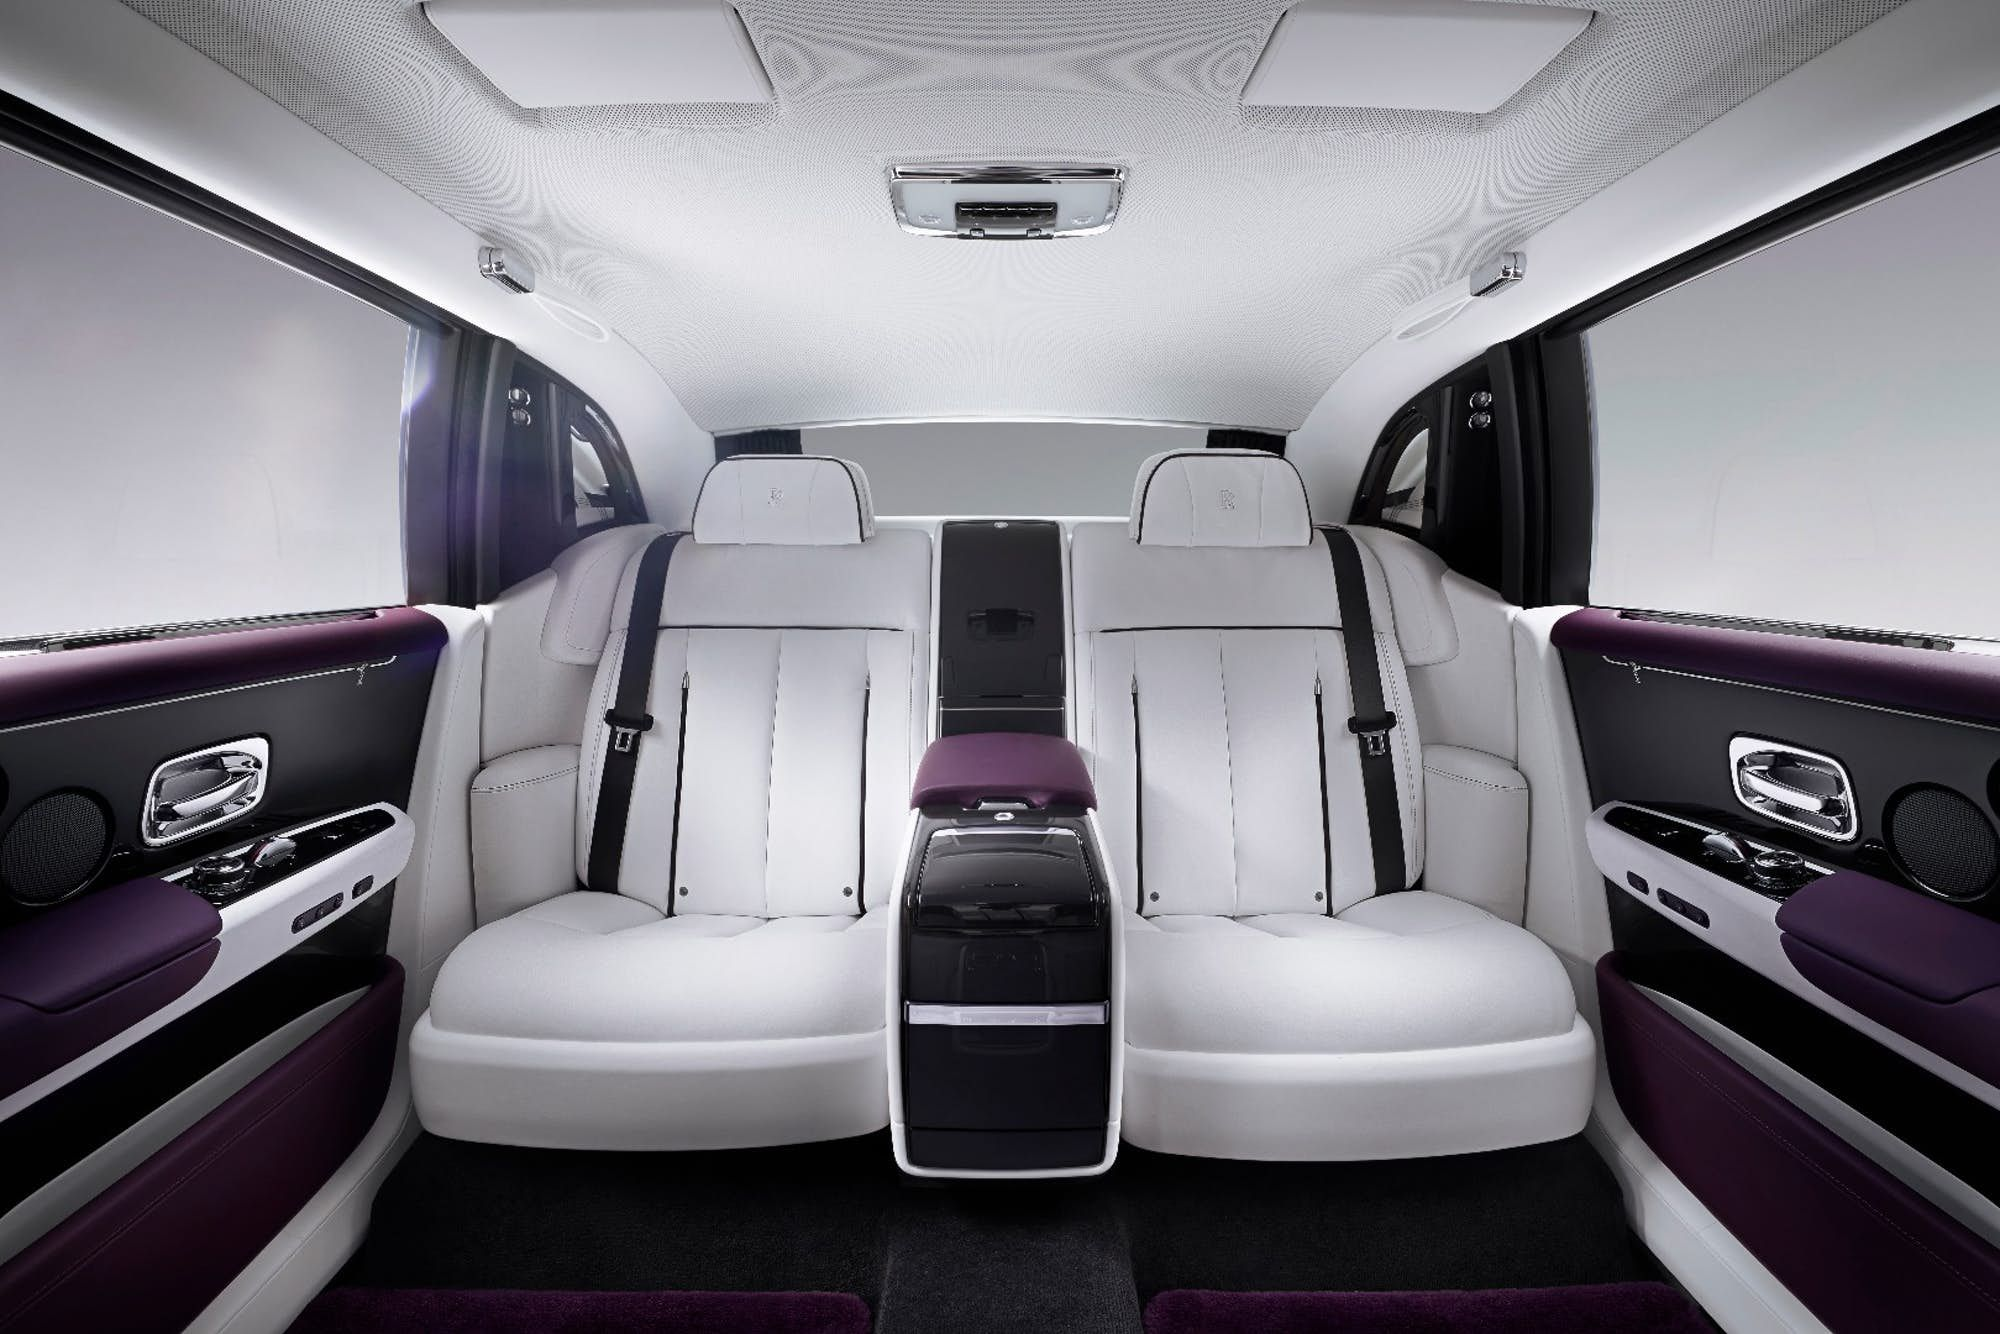 Up close and personal with the stunning new Rolls Royce Phantom